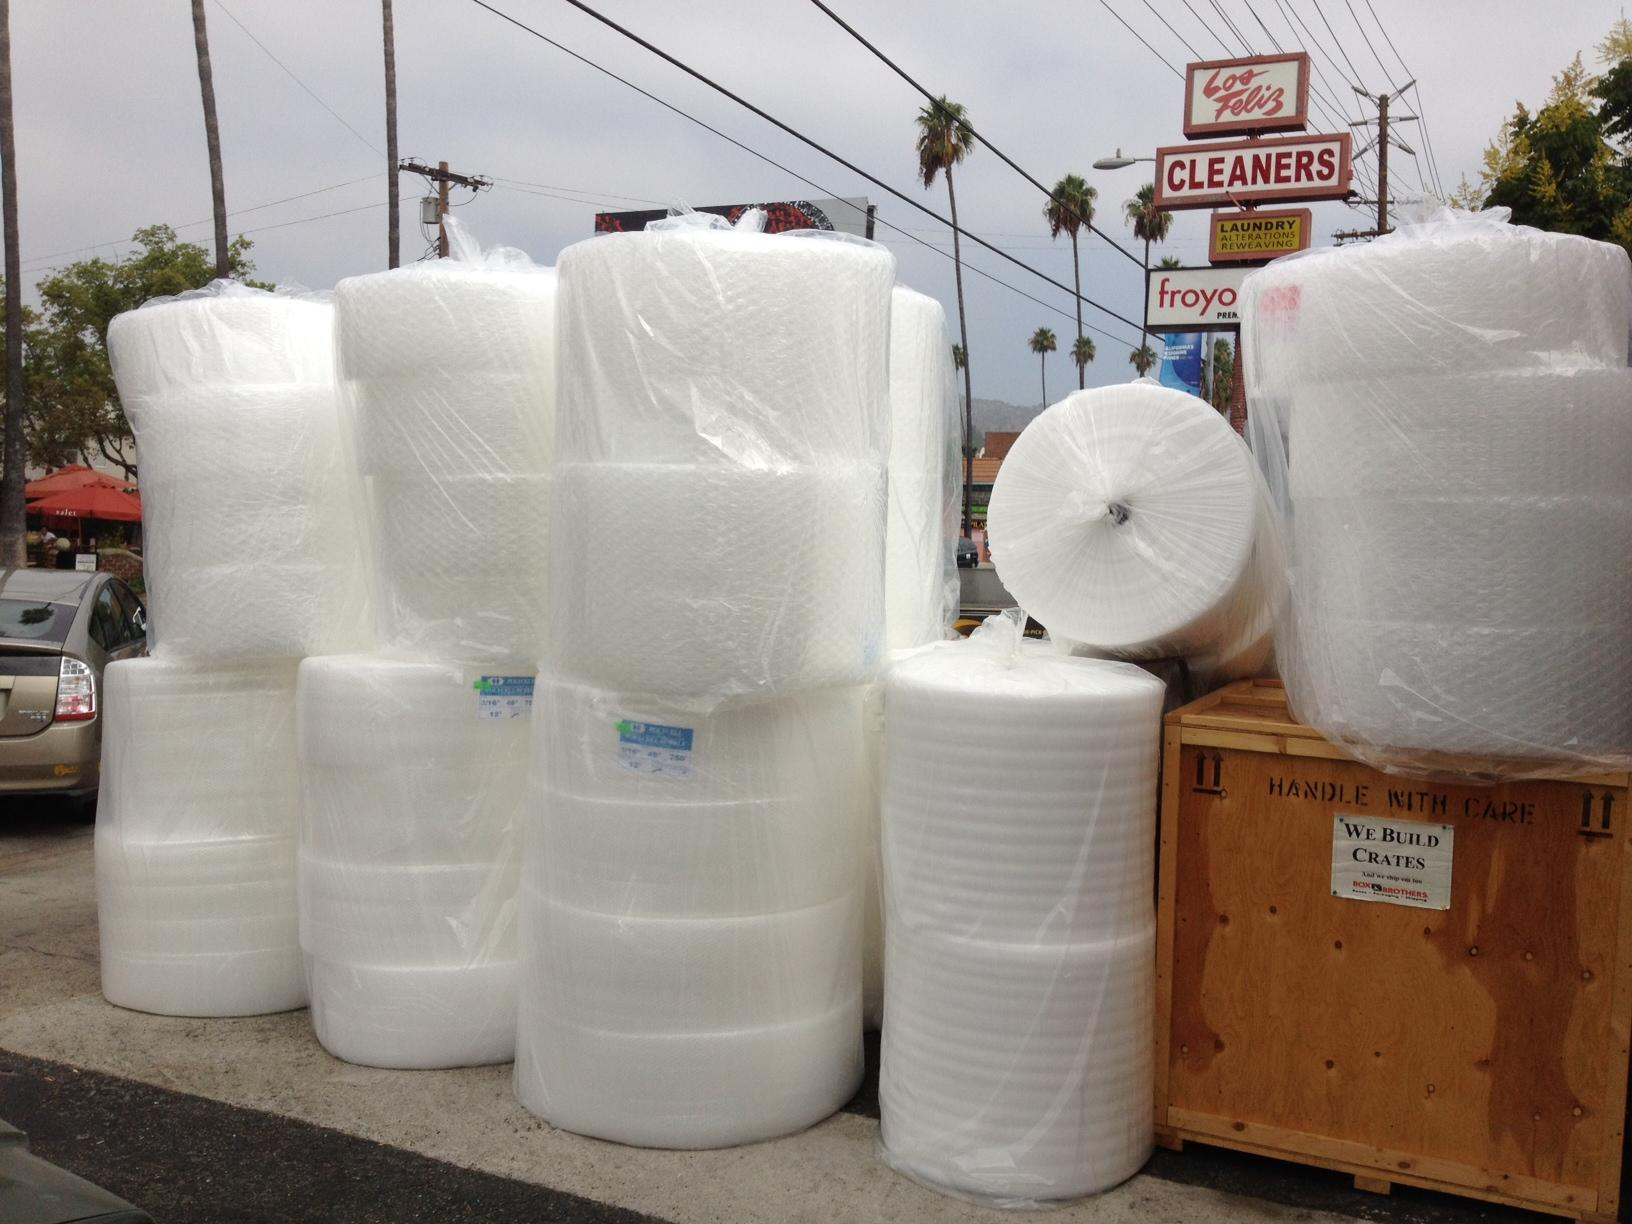 "<a href=""/image/associates/resource/bubble-wrap-arrives"">Bubble wrap arrives</a>"